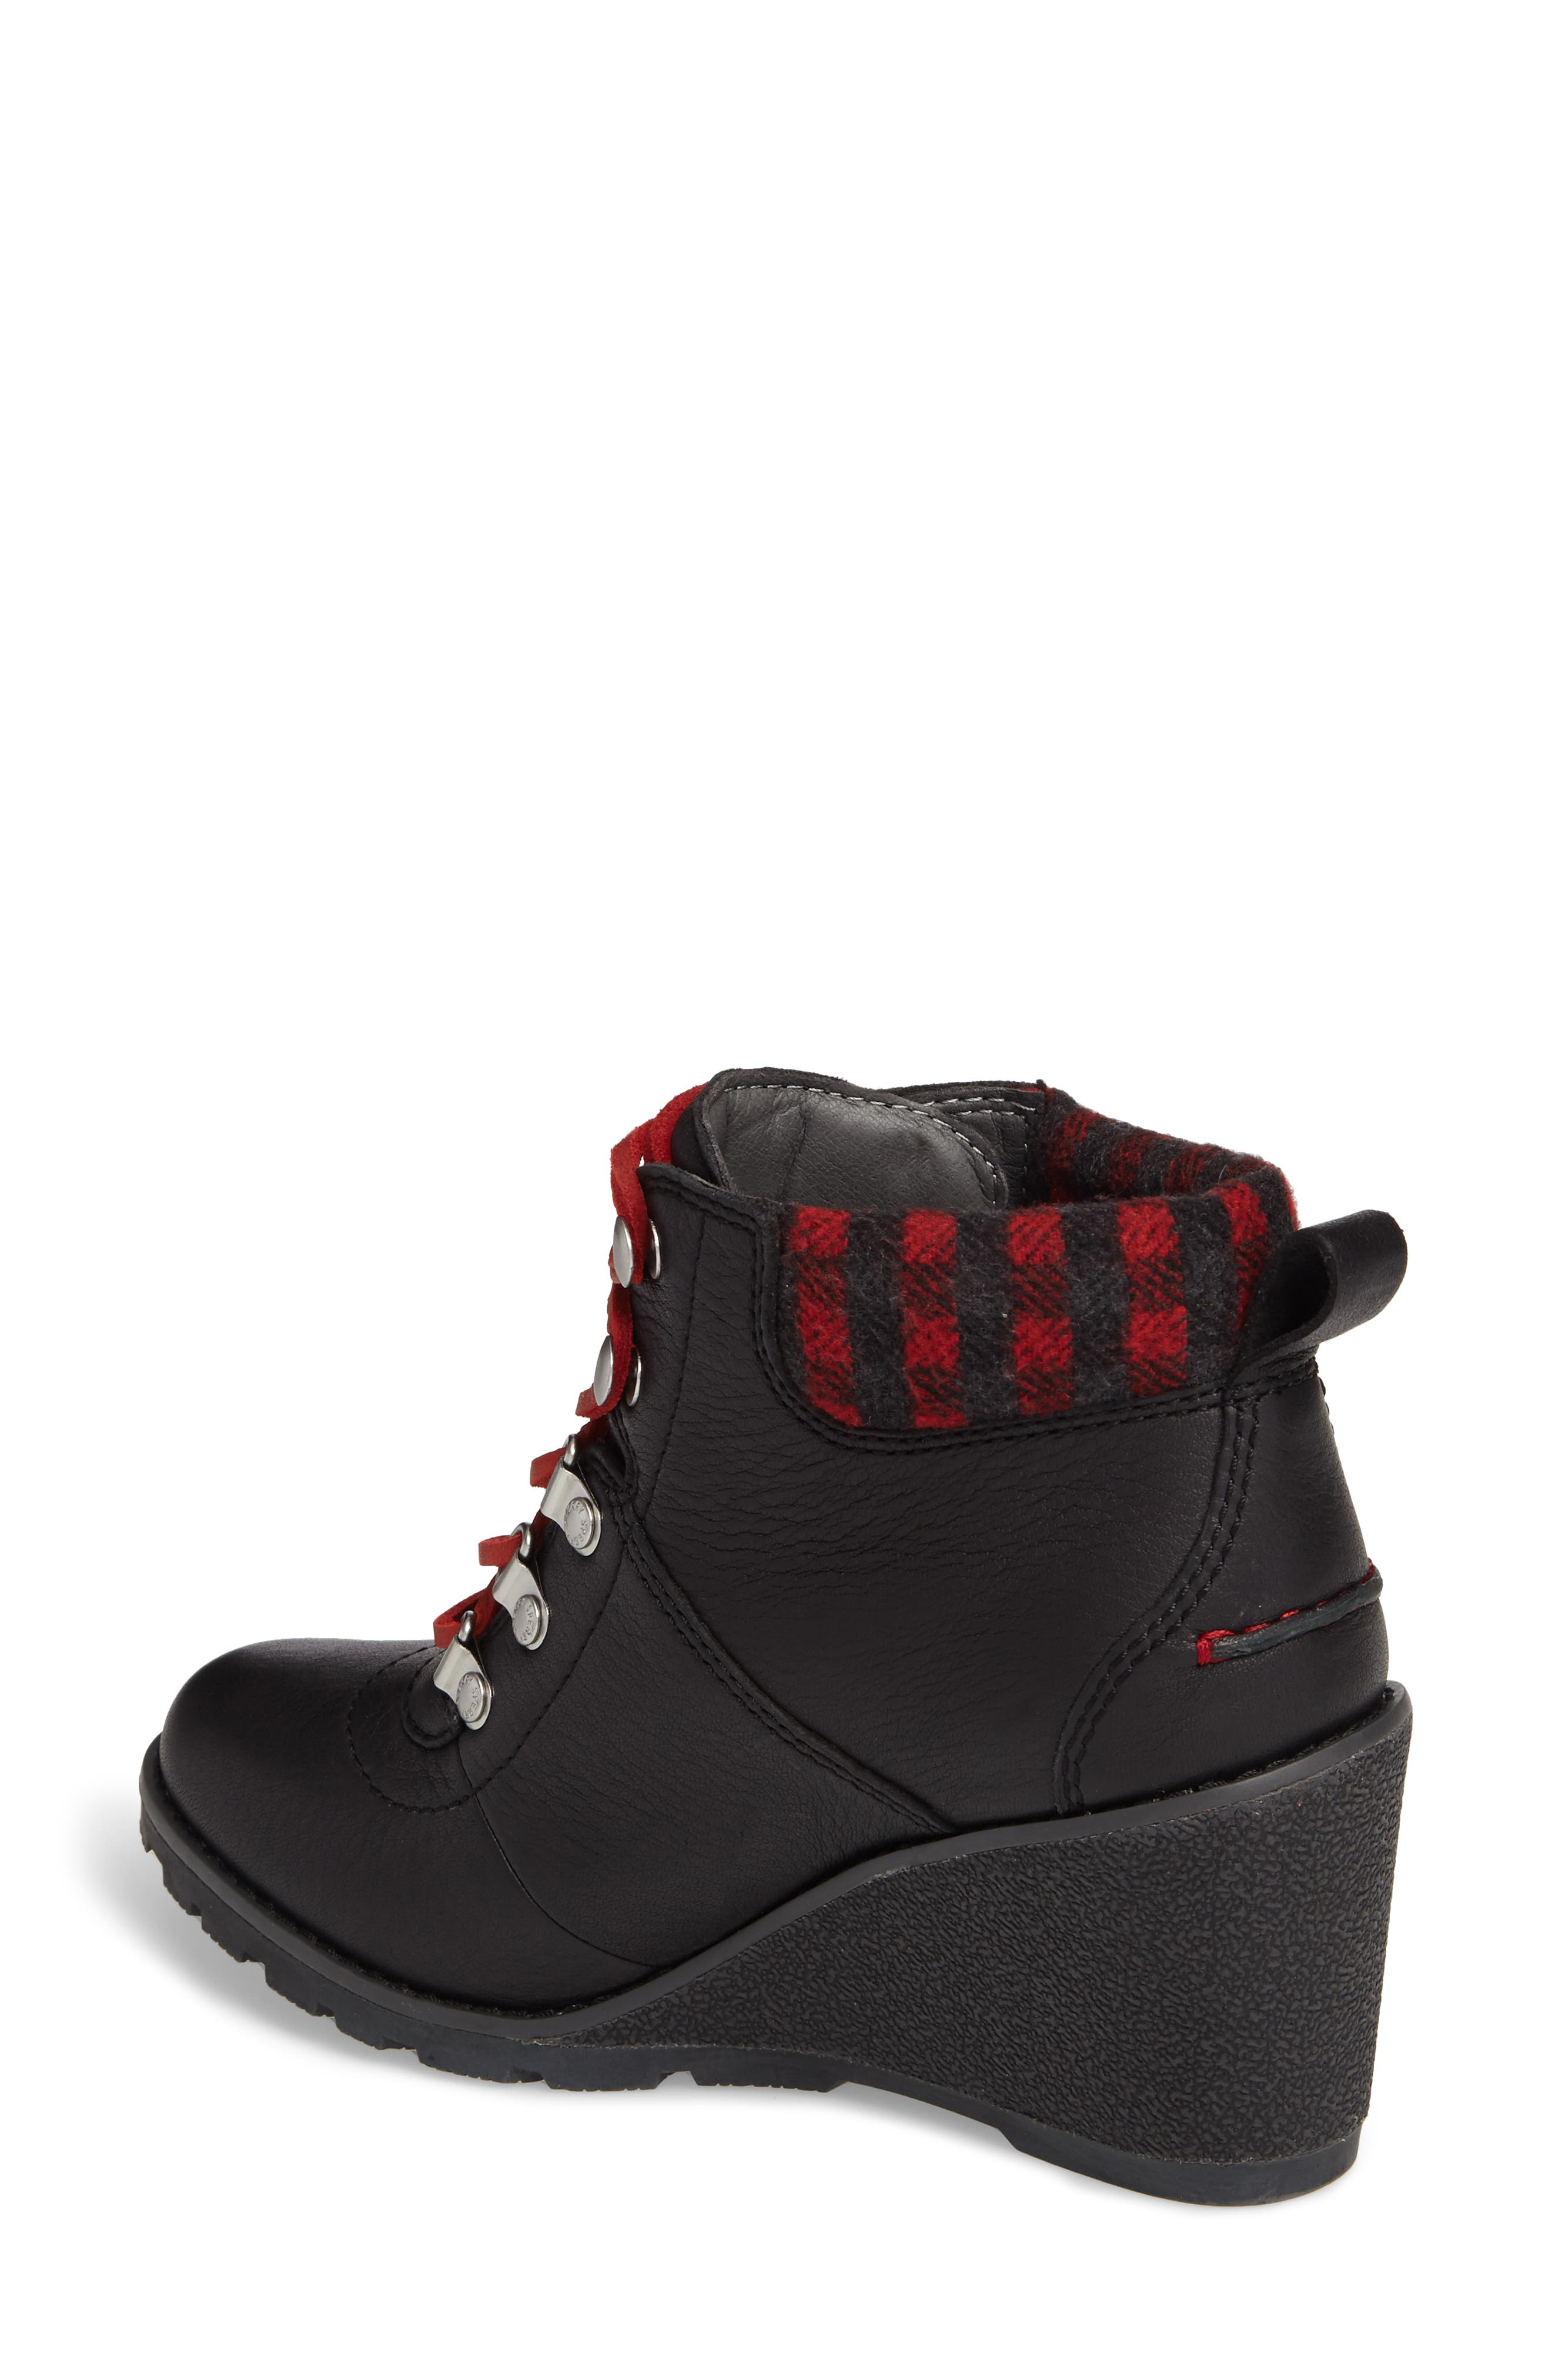 Top-Sider<sup>®</sup> Celeste Bliss Wedge Boot,                             Alternate thumbnail 2, color,                             001